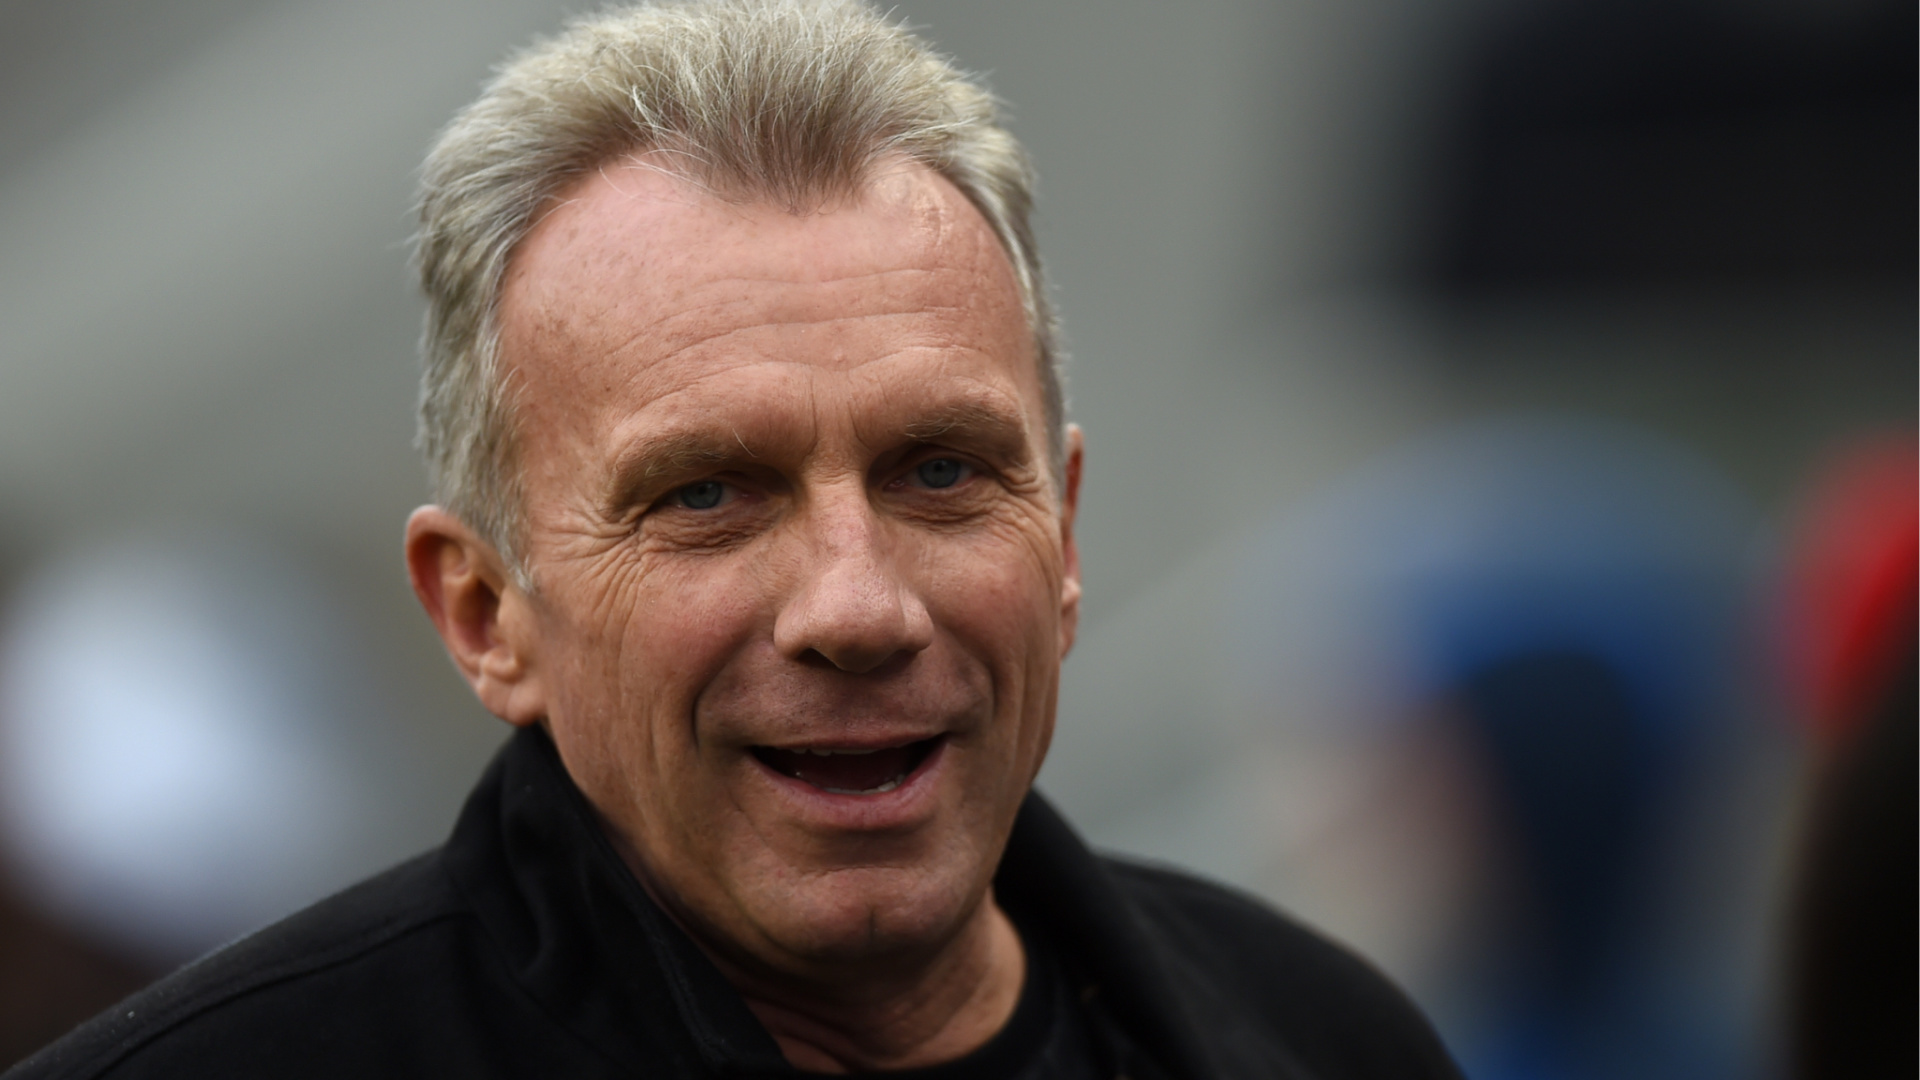 Former San Francisco 49ers quarterback Joe Montana looks on from the sidelines during the NFL game between the San Francisco 49ers and the Cincinnati Bengals at Levi's Stadium on Dec. 20, 2015 in Santa Clara, California. (Thearon W. Henderson/Getty Images)